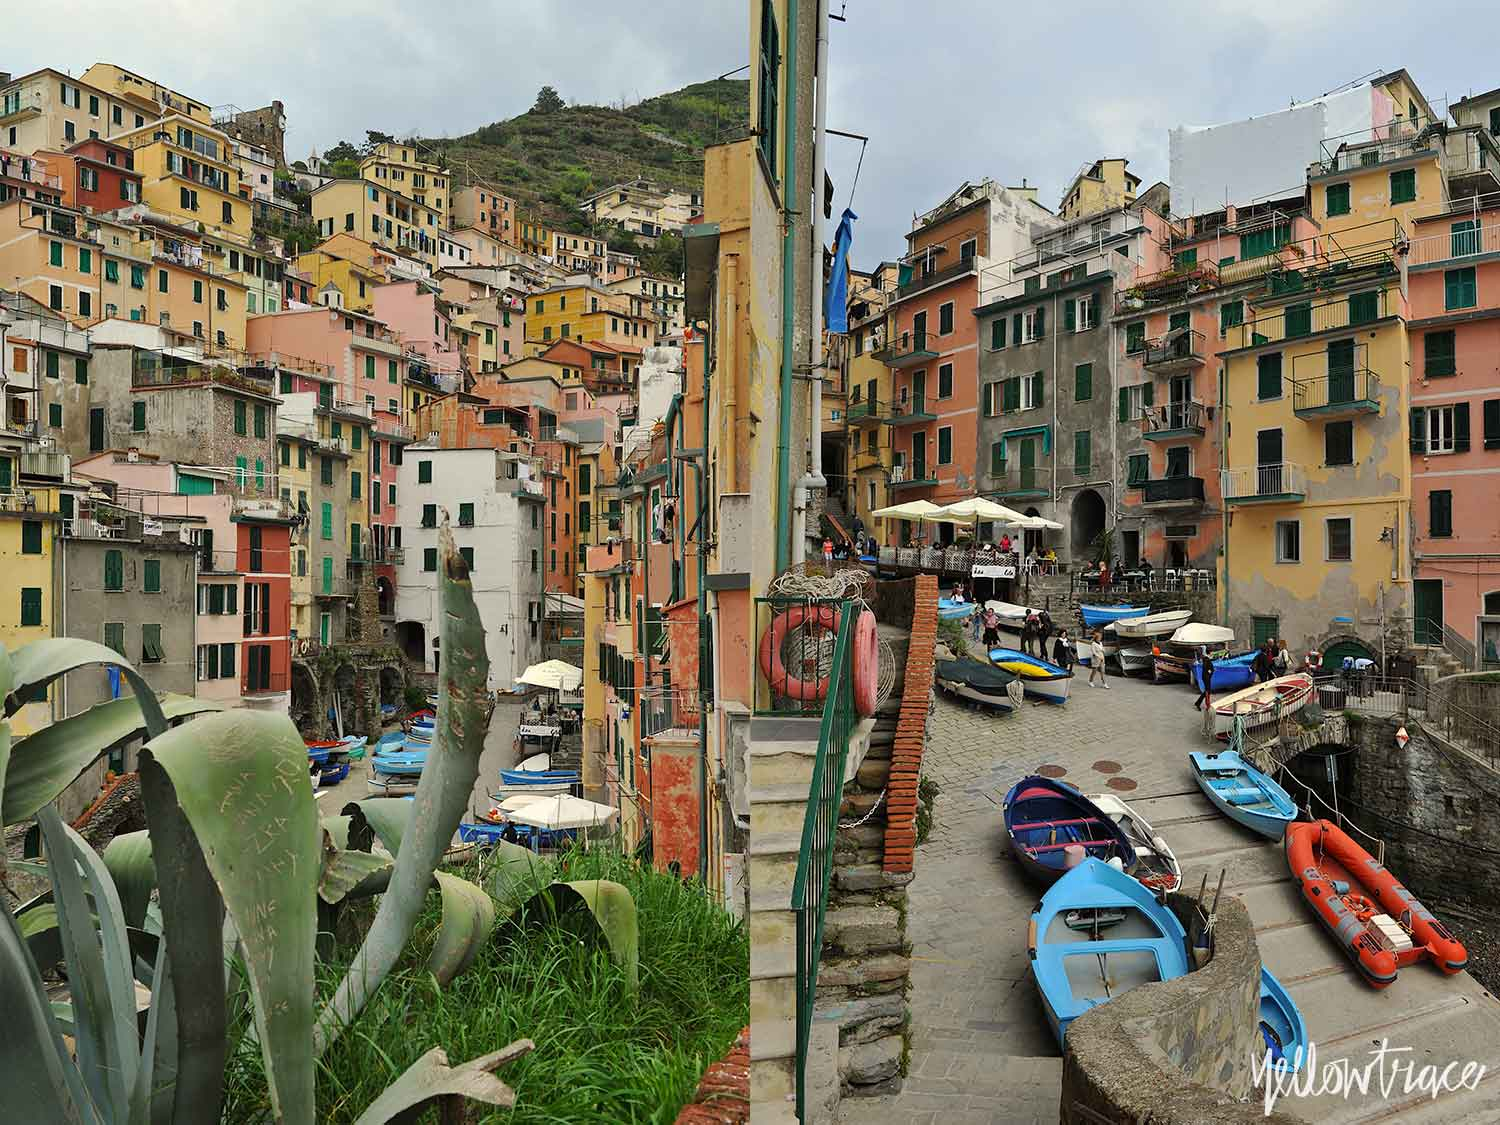 #YellowtraceTravels to Riomaggiore, Cinque Terre Italy / Photo © Nick Hughes